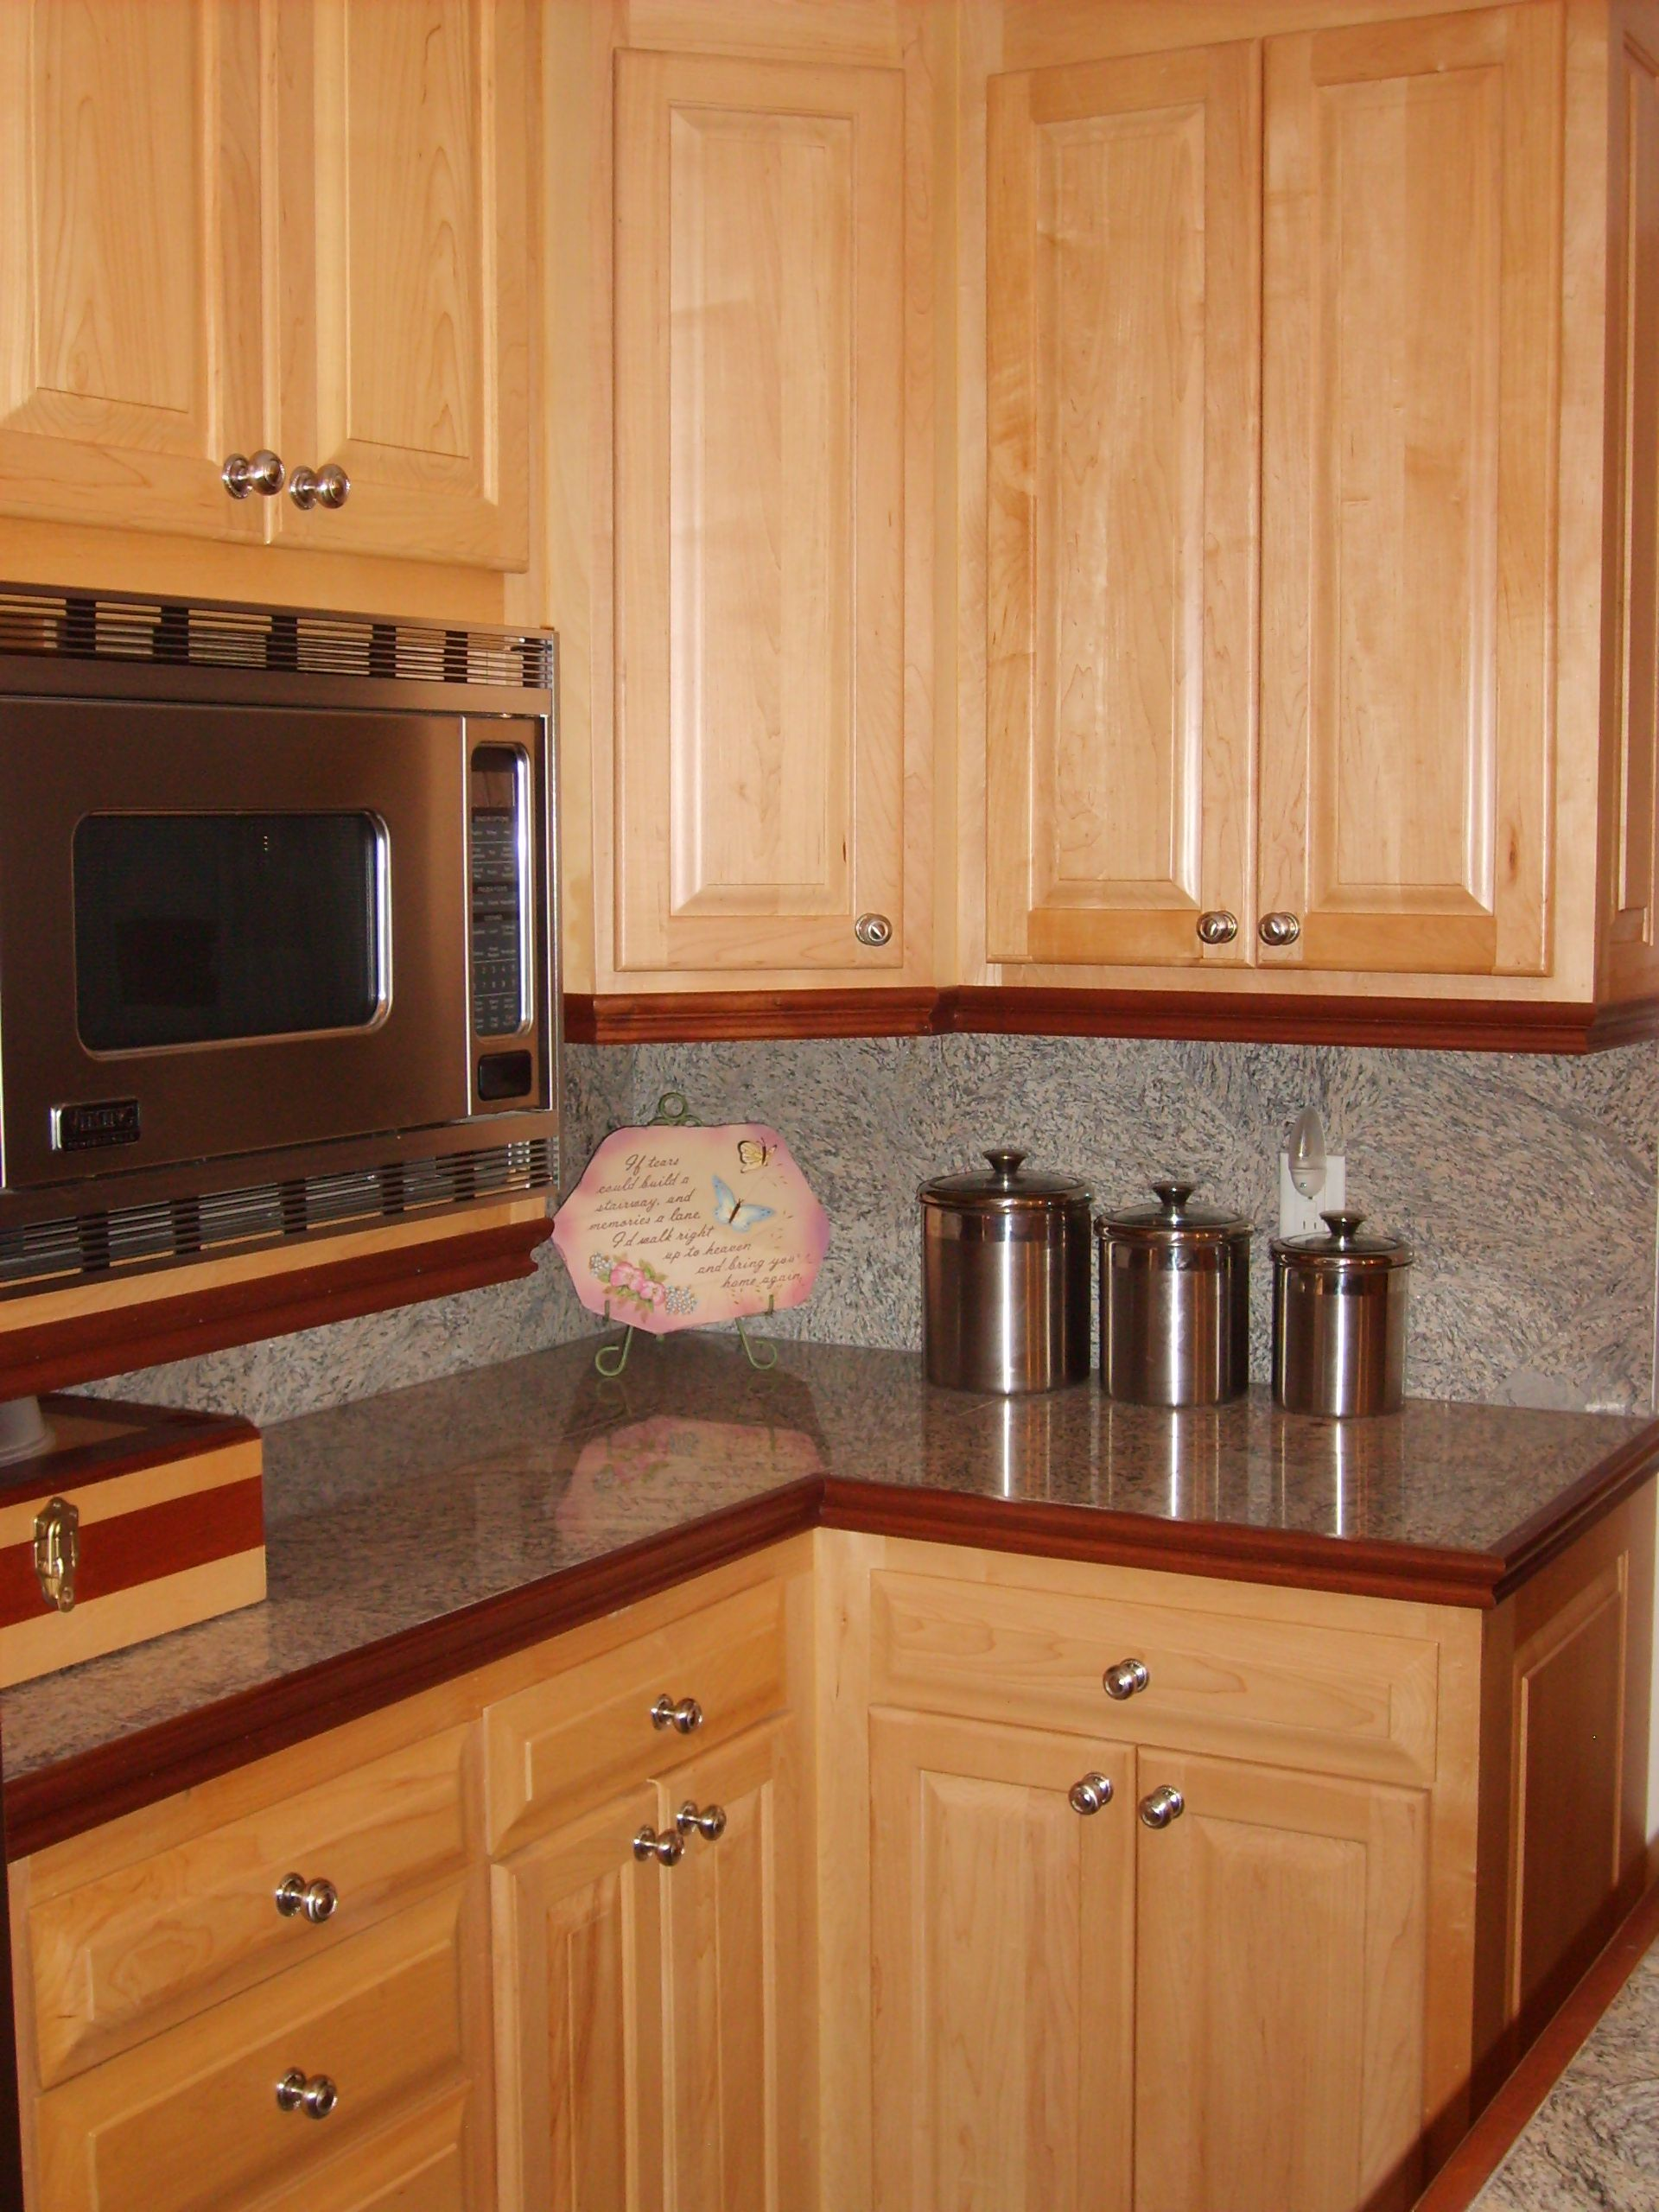 Pin By Vicki Elzinga On Remodel Ideas Unique Kitchen Backsplash Maple Kitchen Small Kitchen Room Design